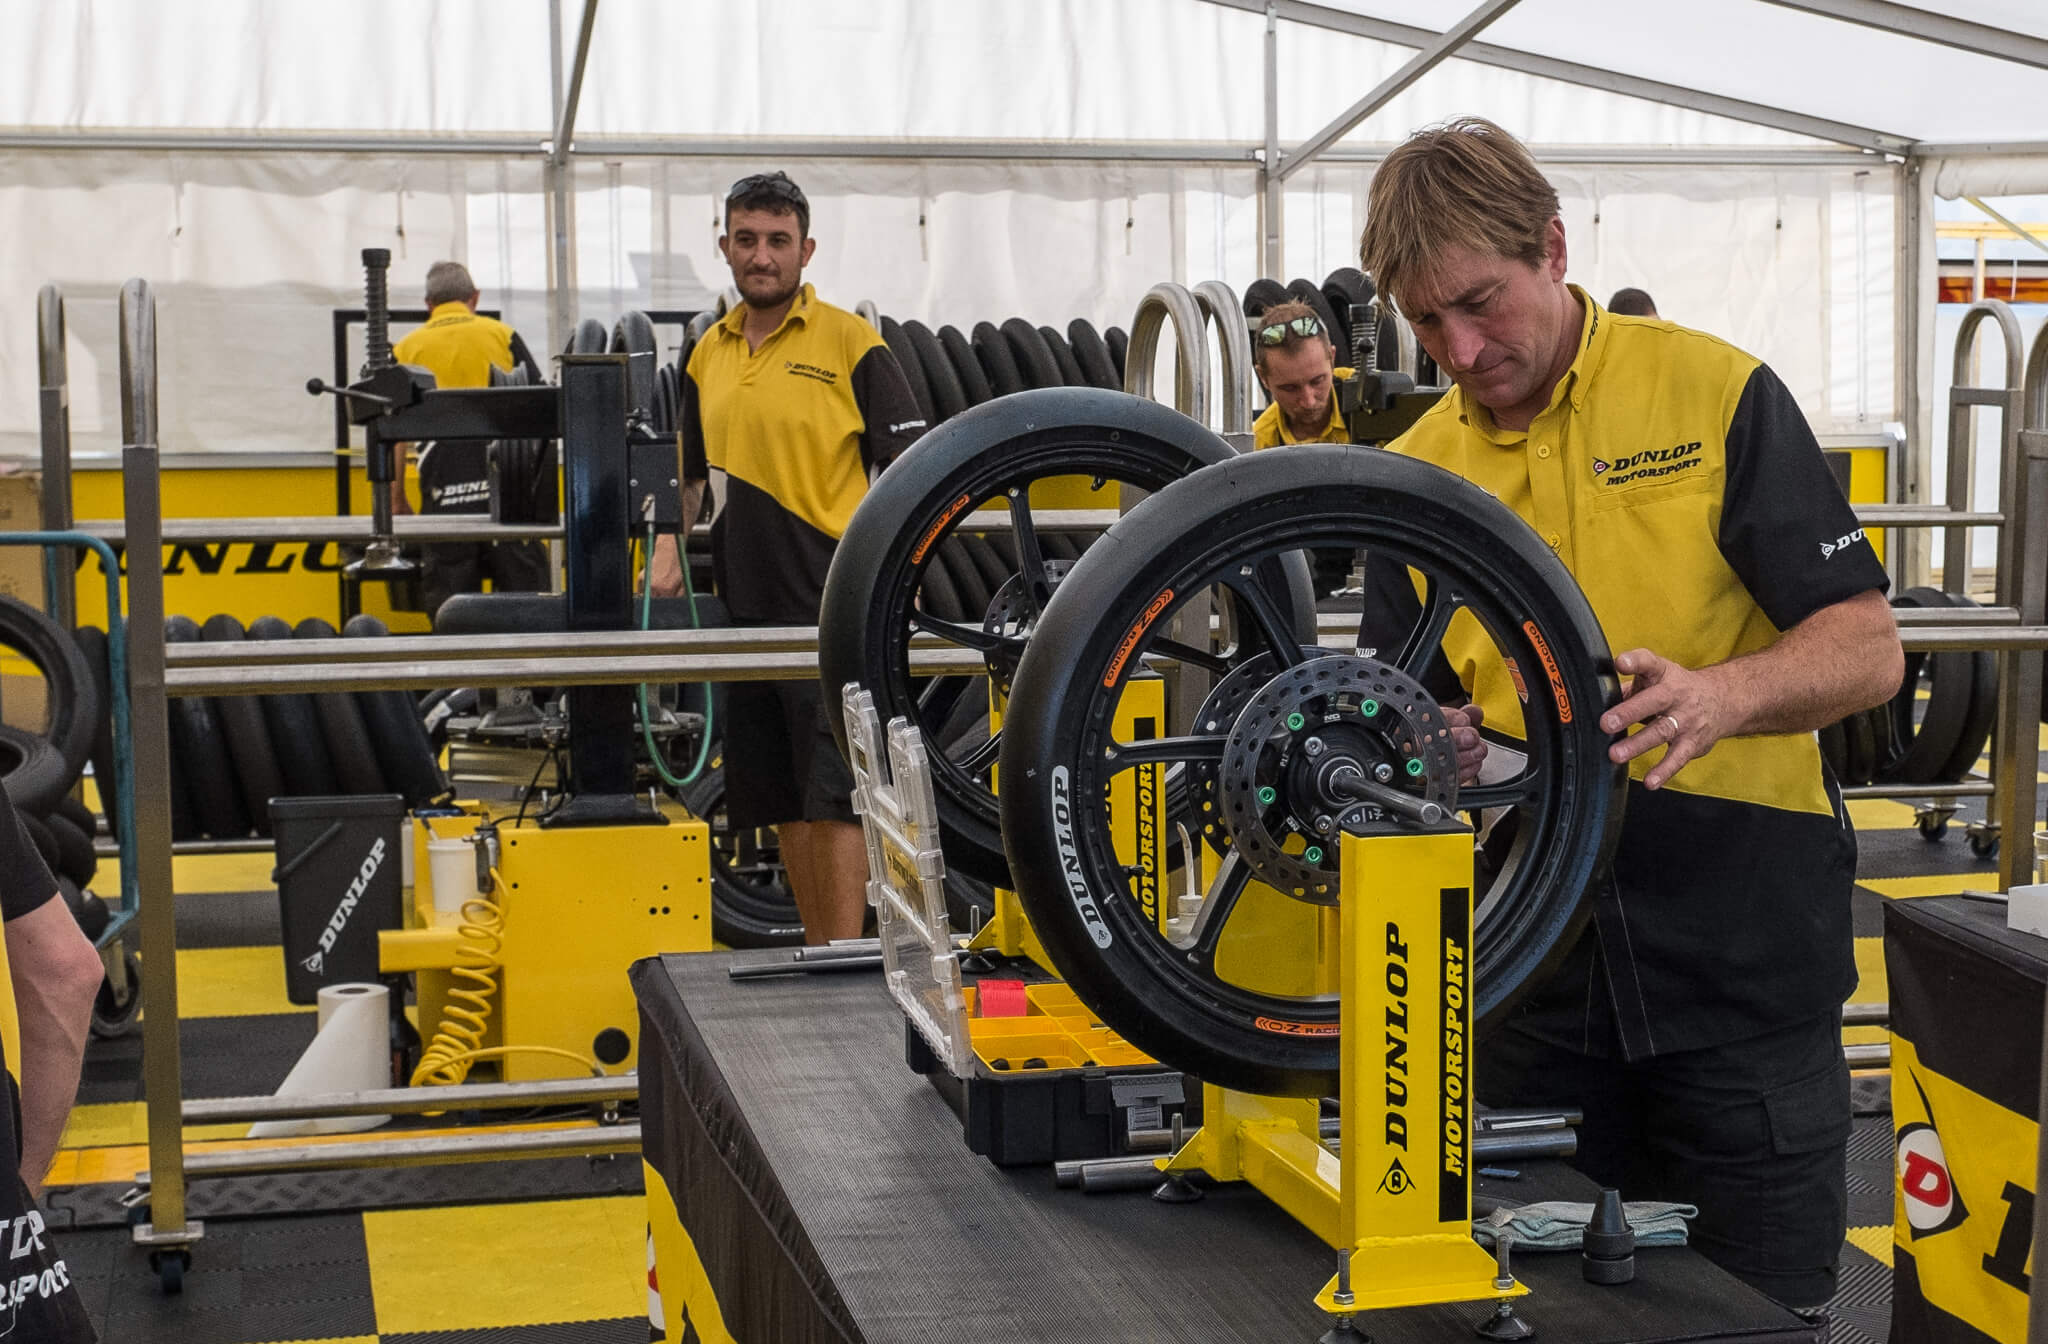 The Dunlop service center. Placing new tyres and balancing the wheels